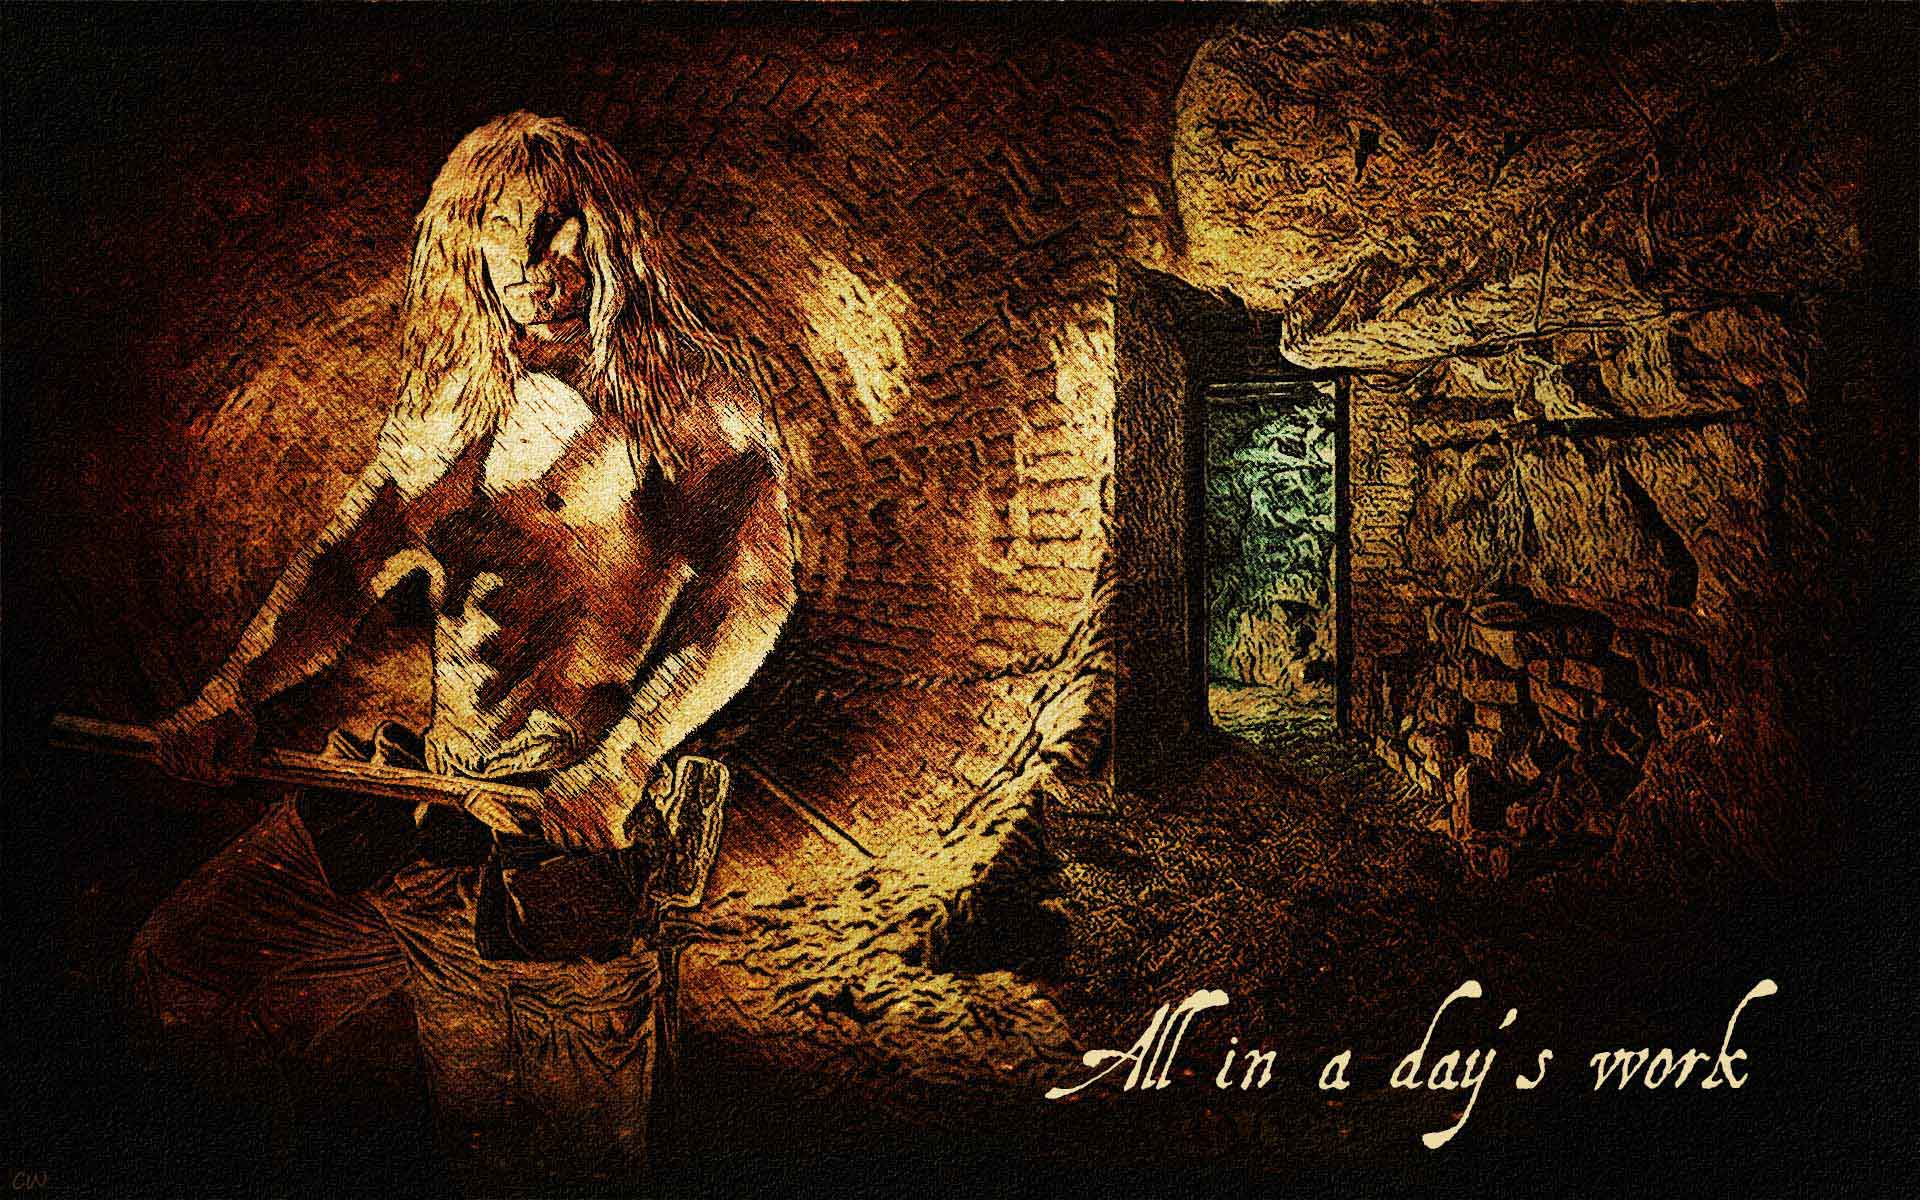 Vincent, shirtless, holding a sledge hammer, a new entrance in the tunnels created